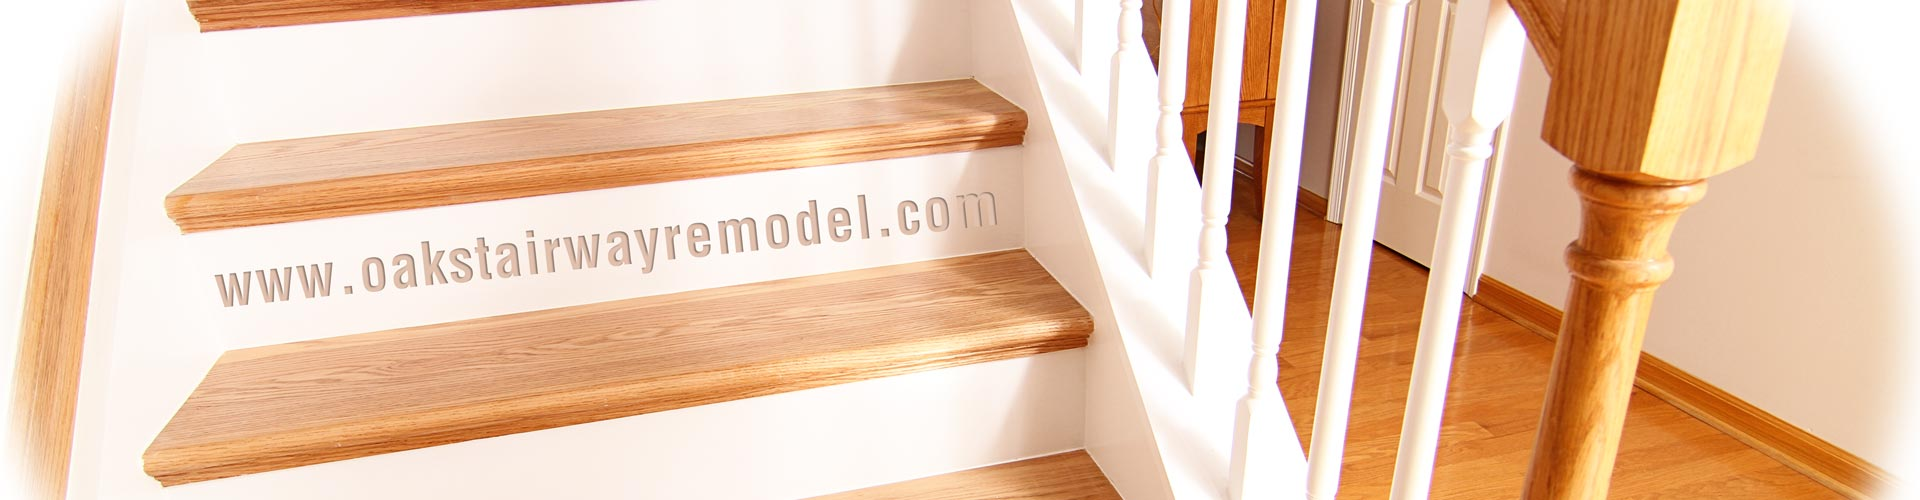 How To Remodel A Stairway, Stairs